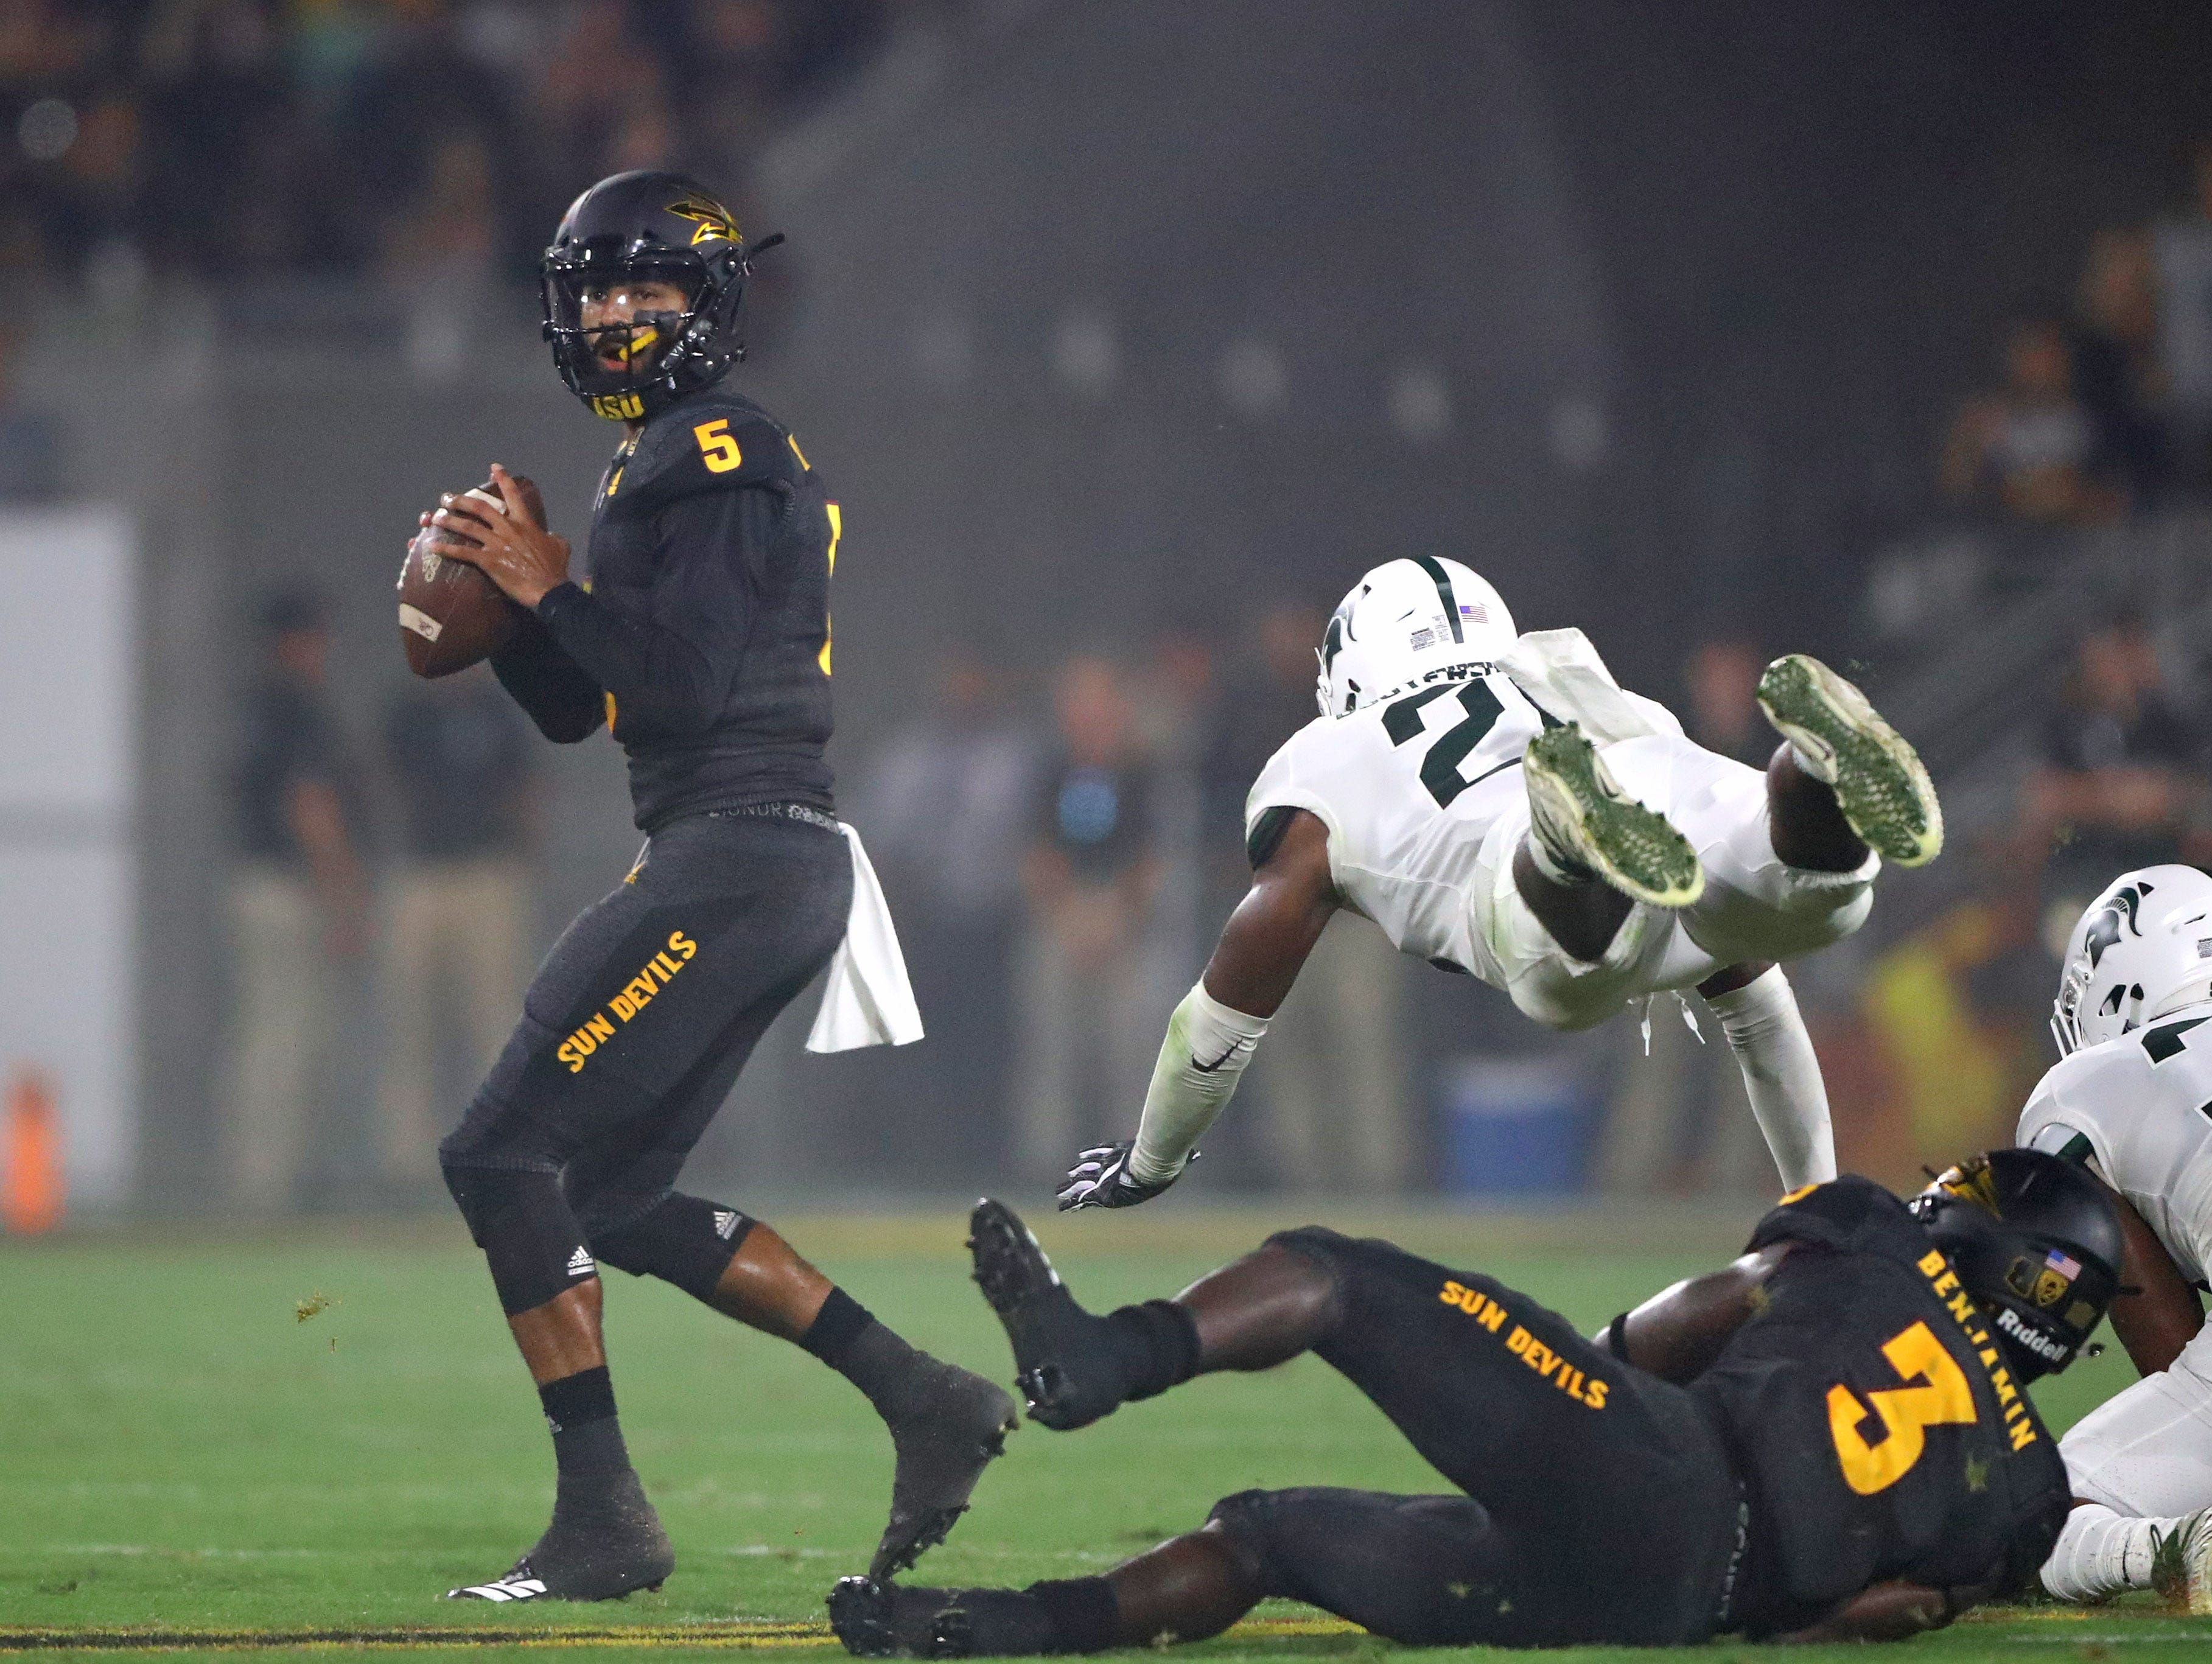 Arizona State Sun Devils quarterback Manny Wilkins (5) drops back to pass as Michigan State Spartans linebacker Brandon Bouyer-Randle (26) is upended in the first half at Sun Devil Stadium.